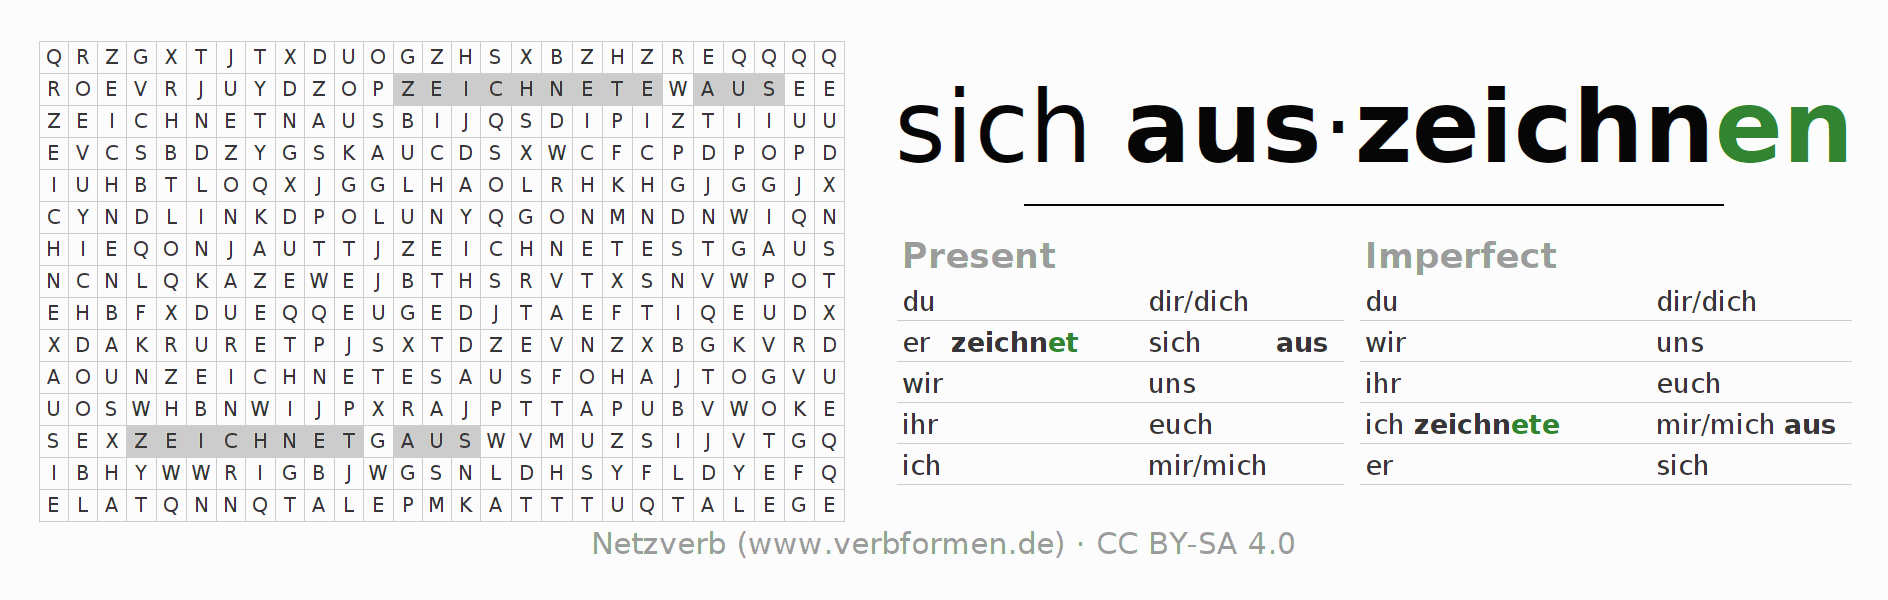 Word search puzzle for the conjugation of the verb sich auszeichnen